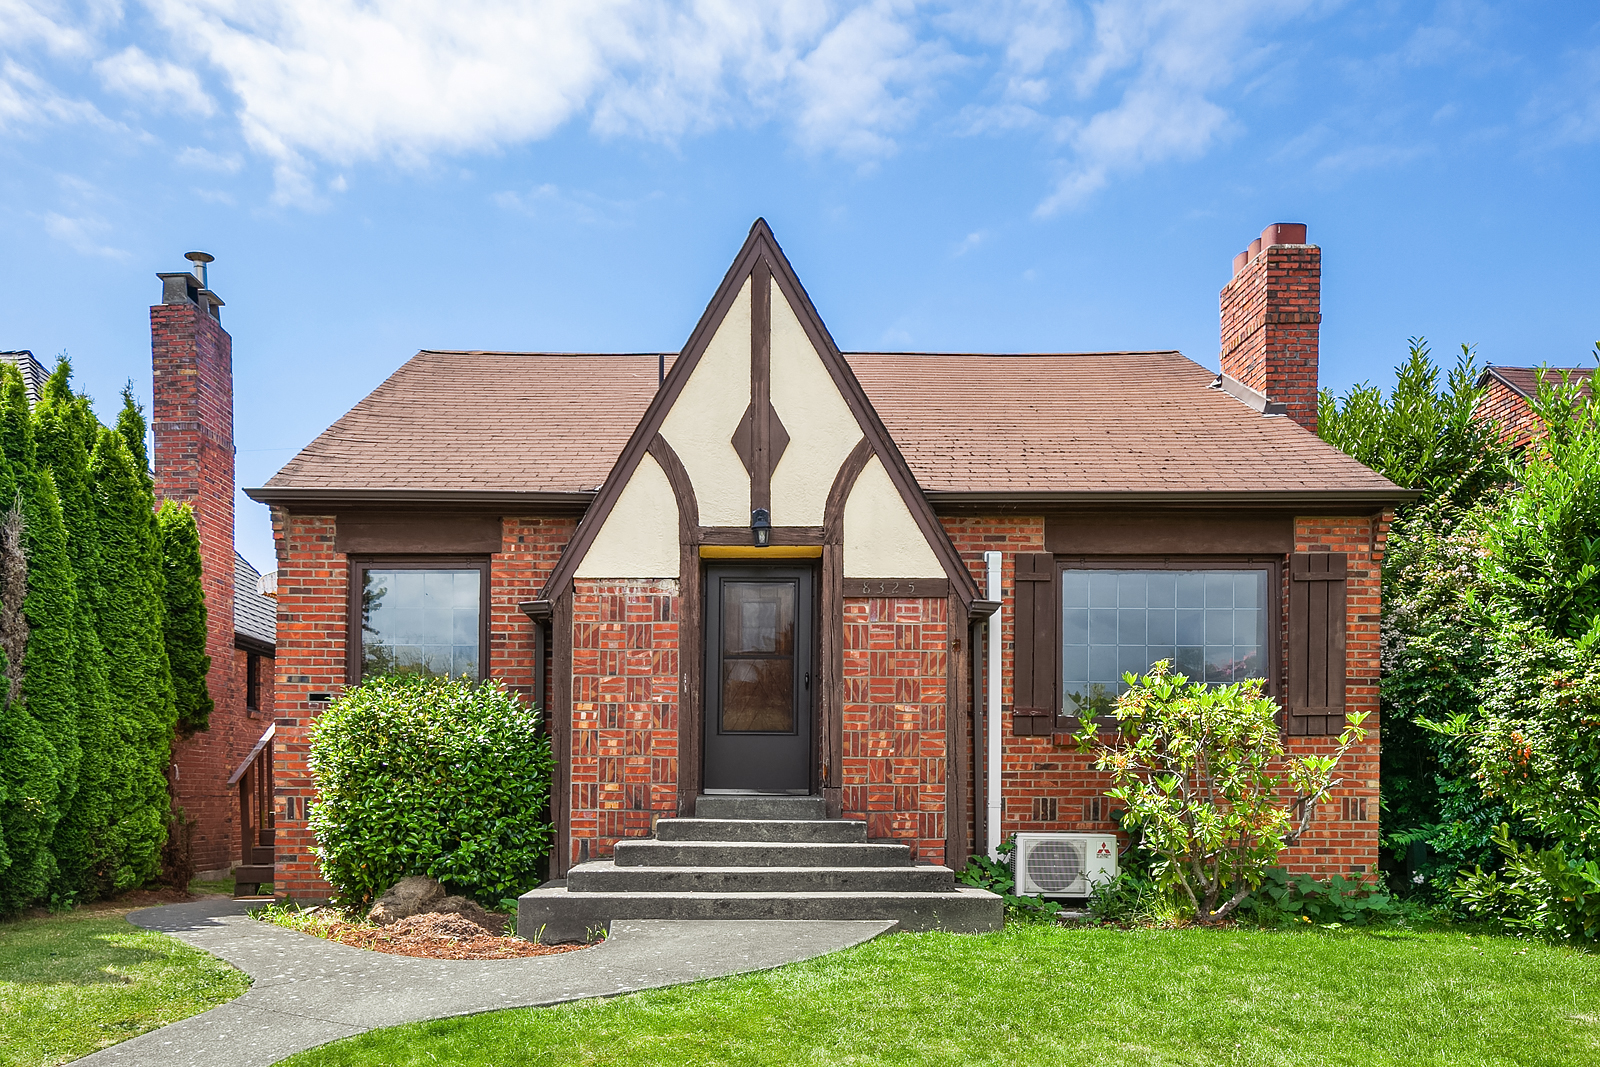 *8325 23rd Ave NW, Seattle | $750,000